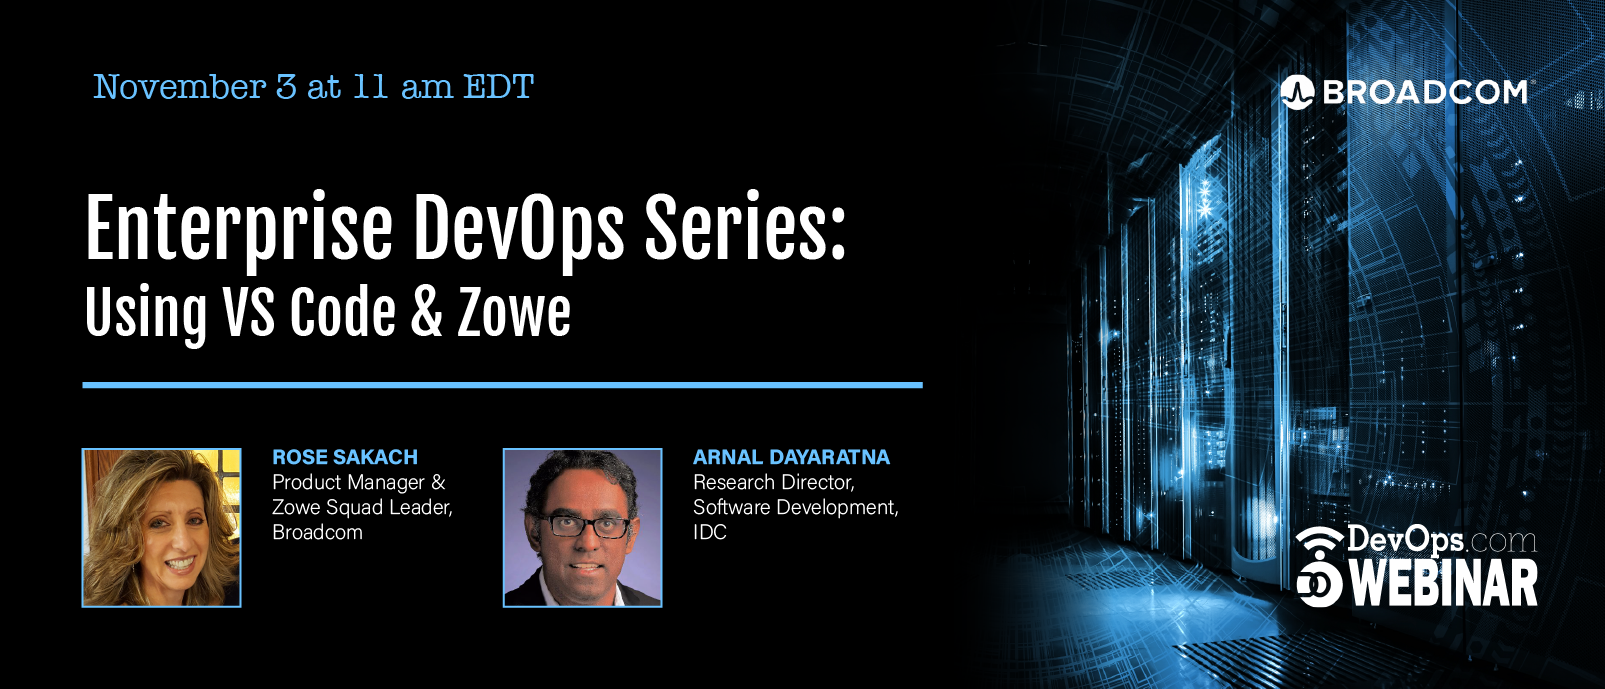 Enterprise DevOps Series: Using VS Code & Zowe